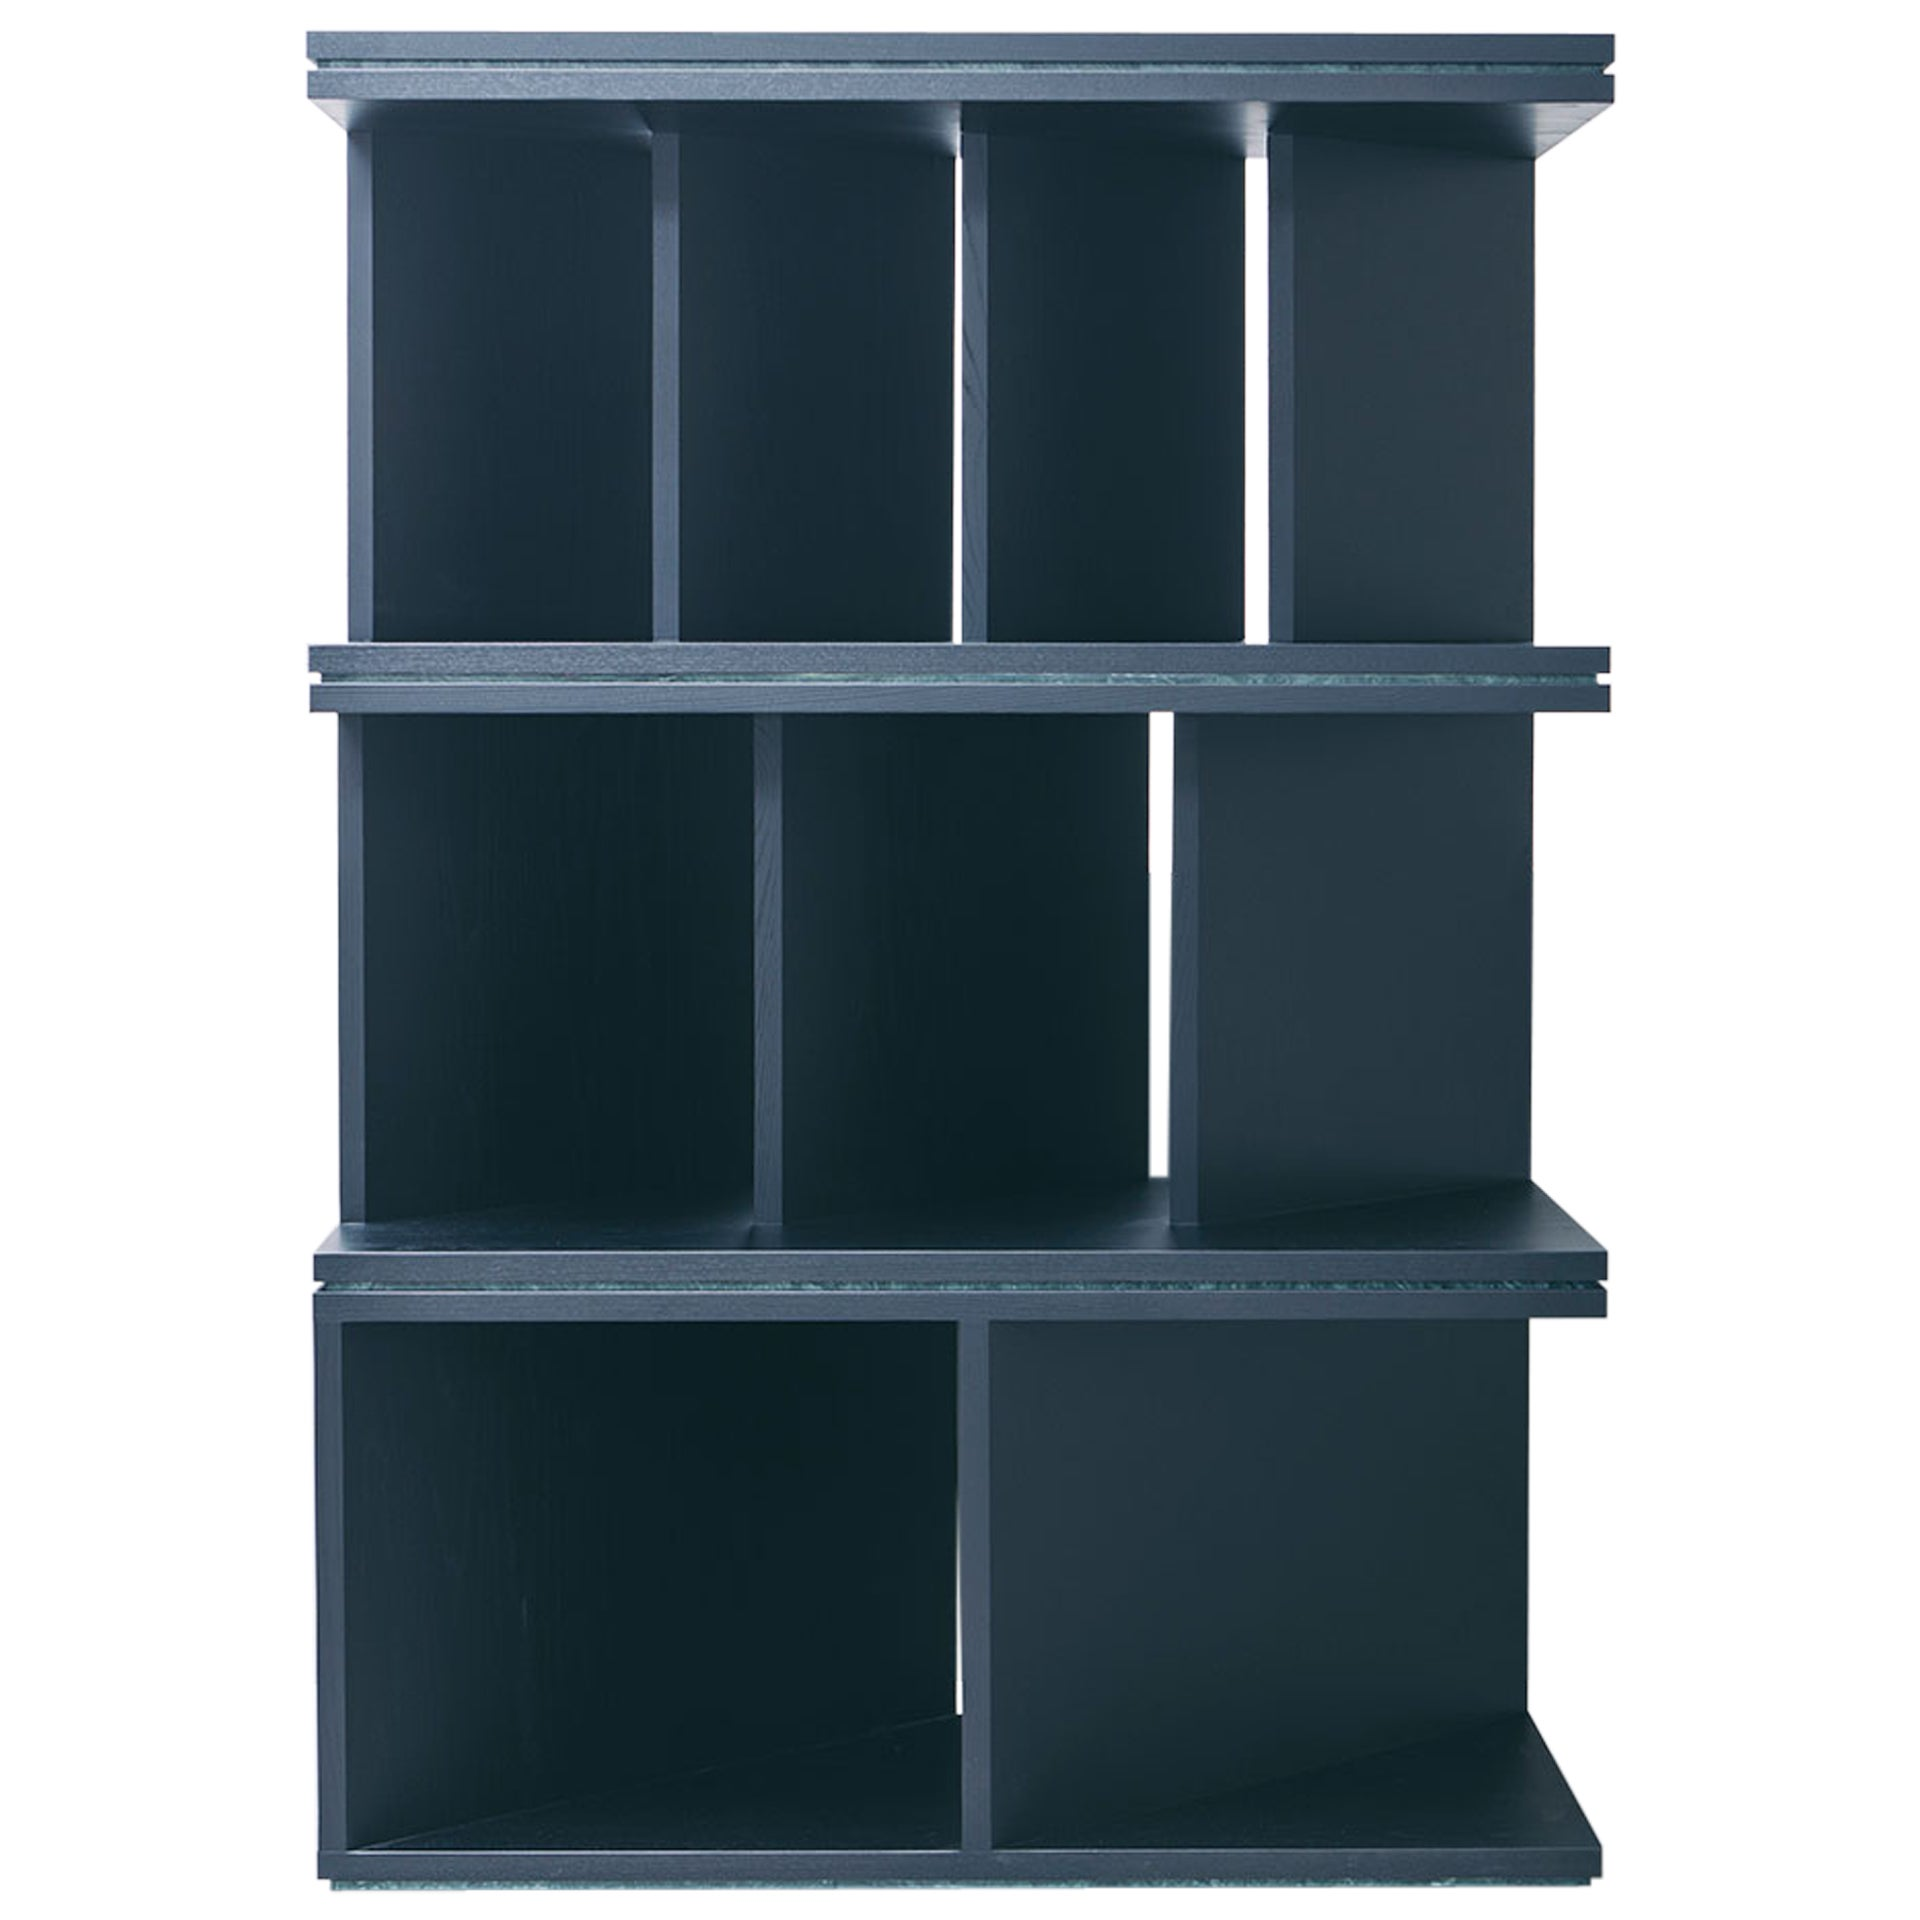 contemporary black ash wood room divider and bookcase, oblique 01.1 by barh